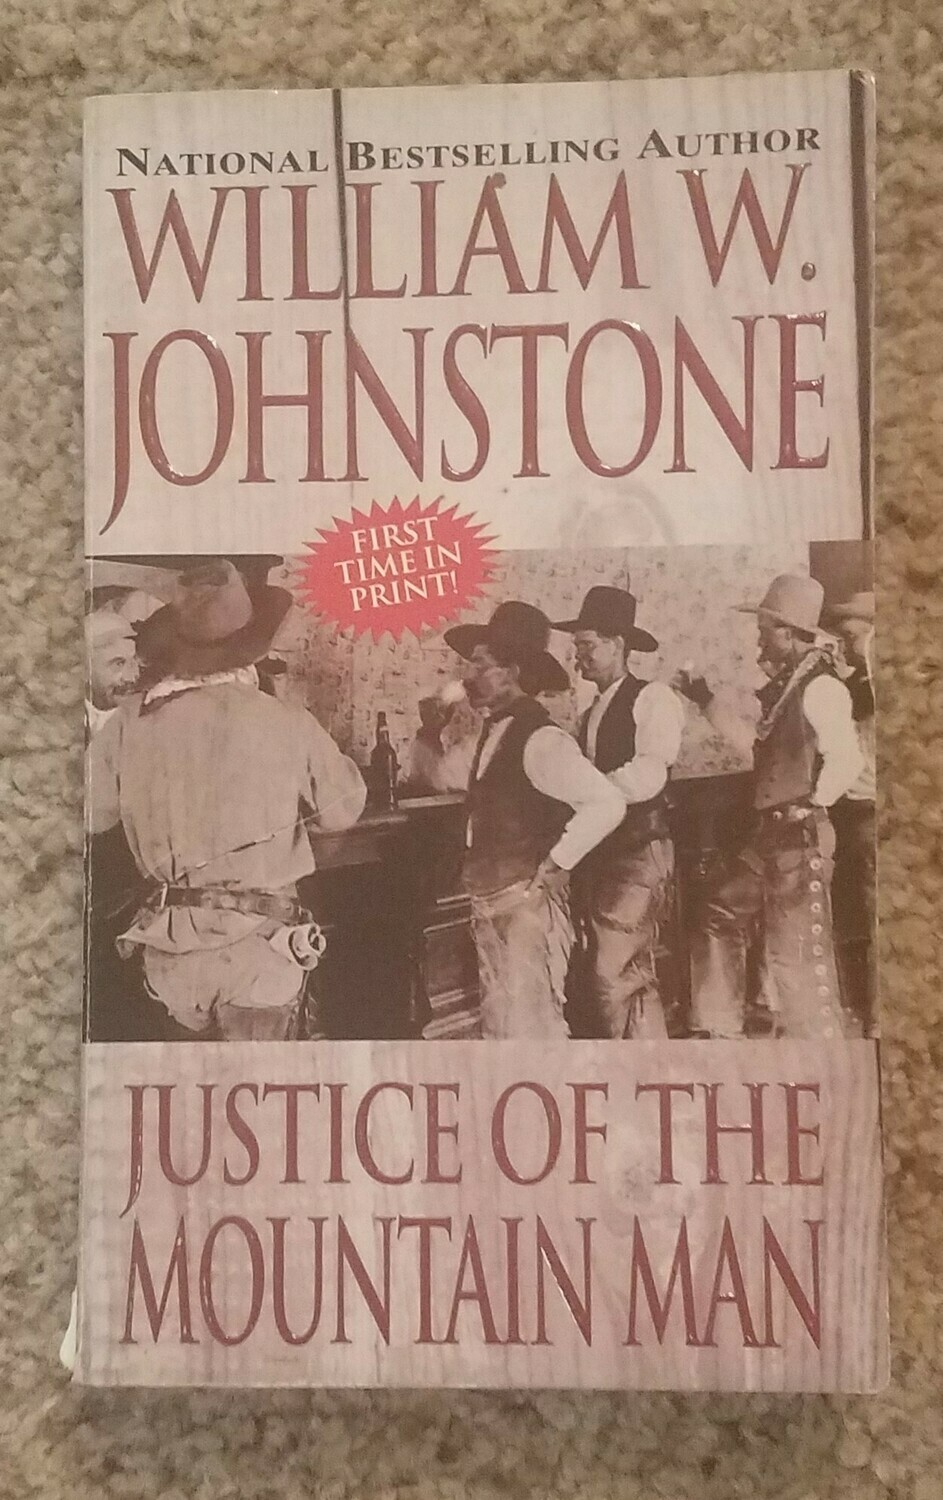 Justice of the Mountain Man by William W. Johnstone